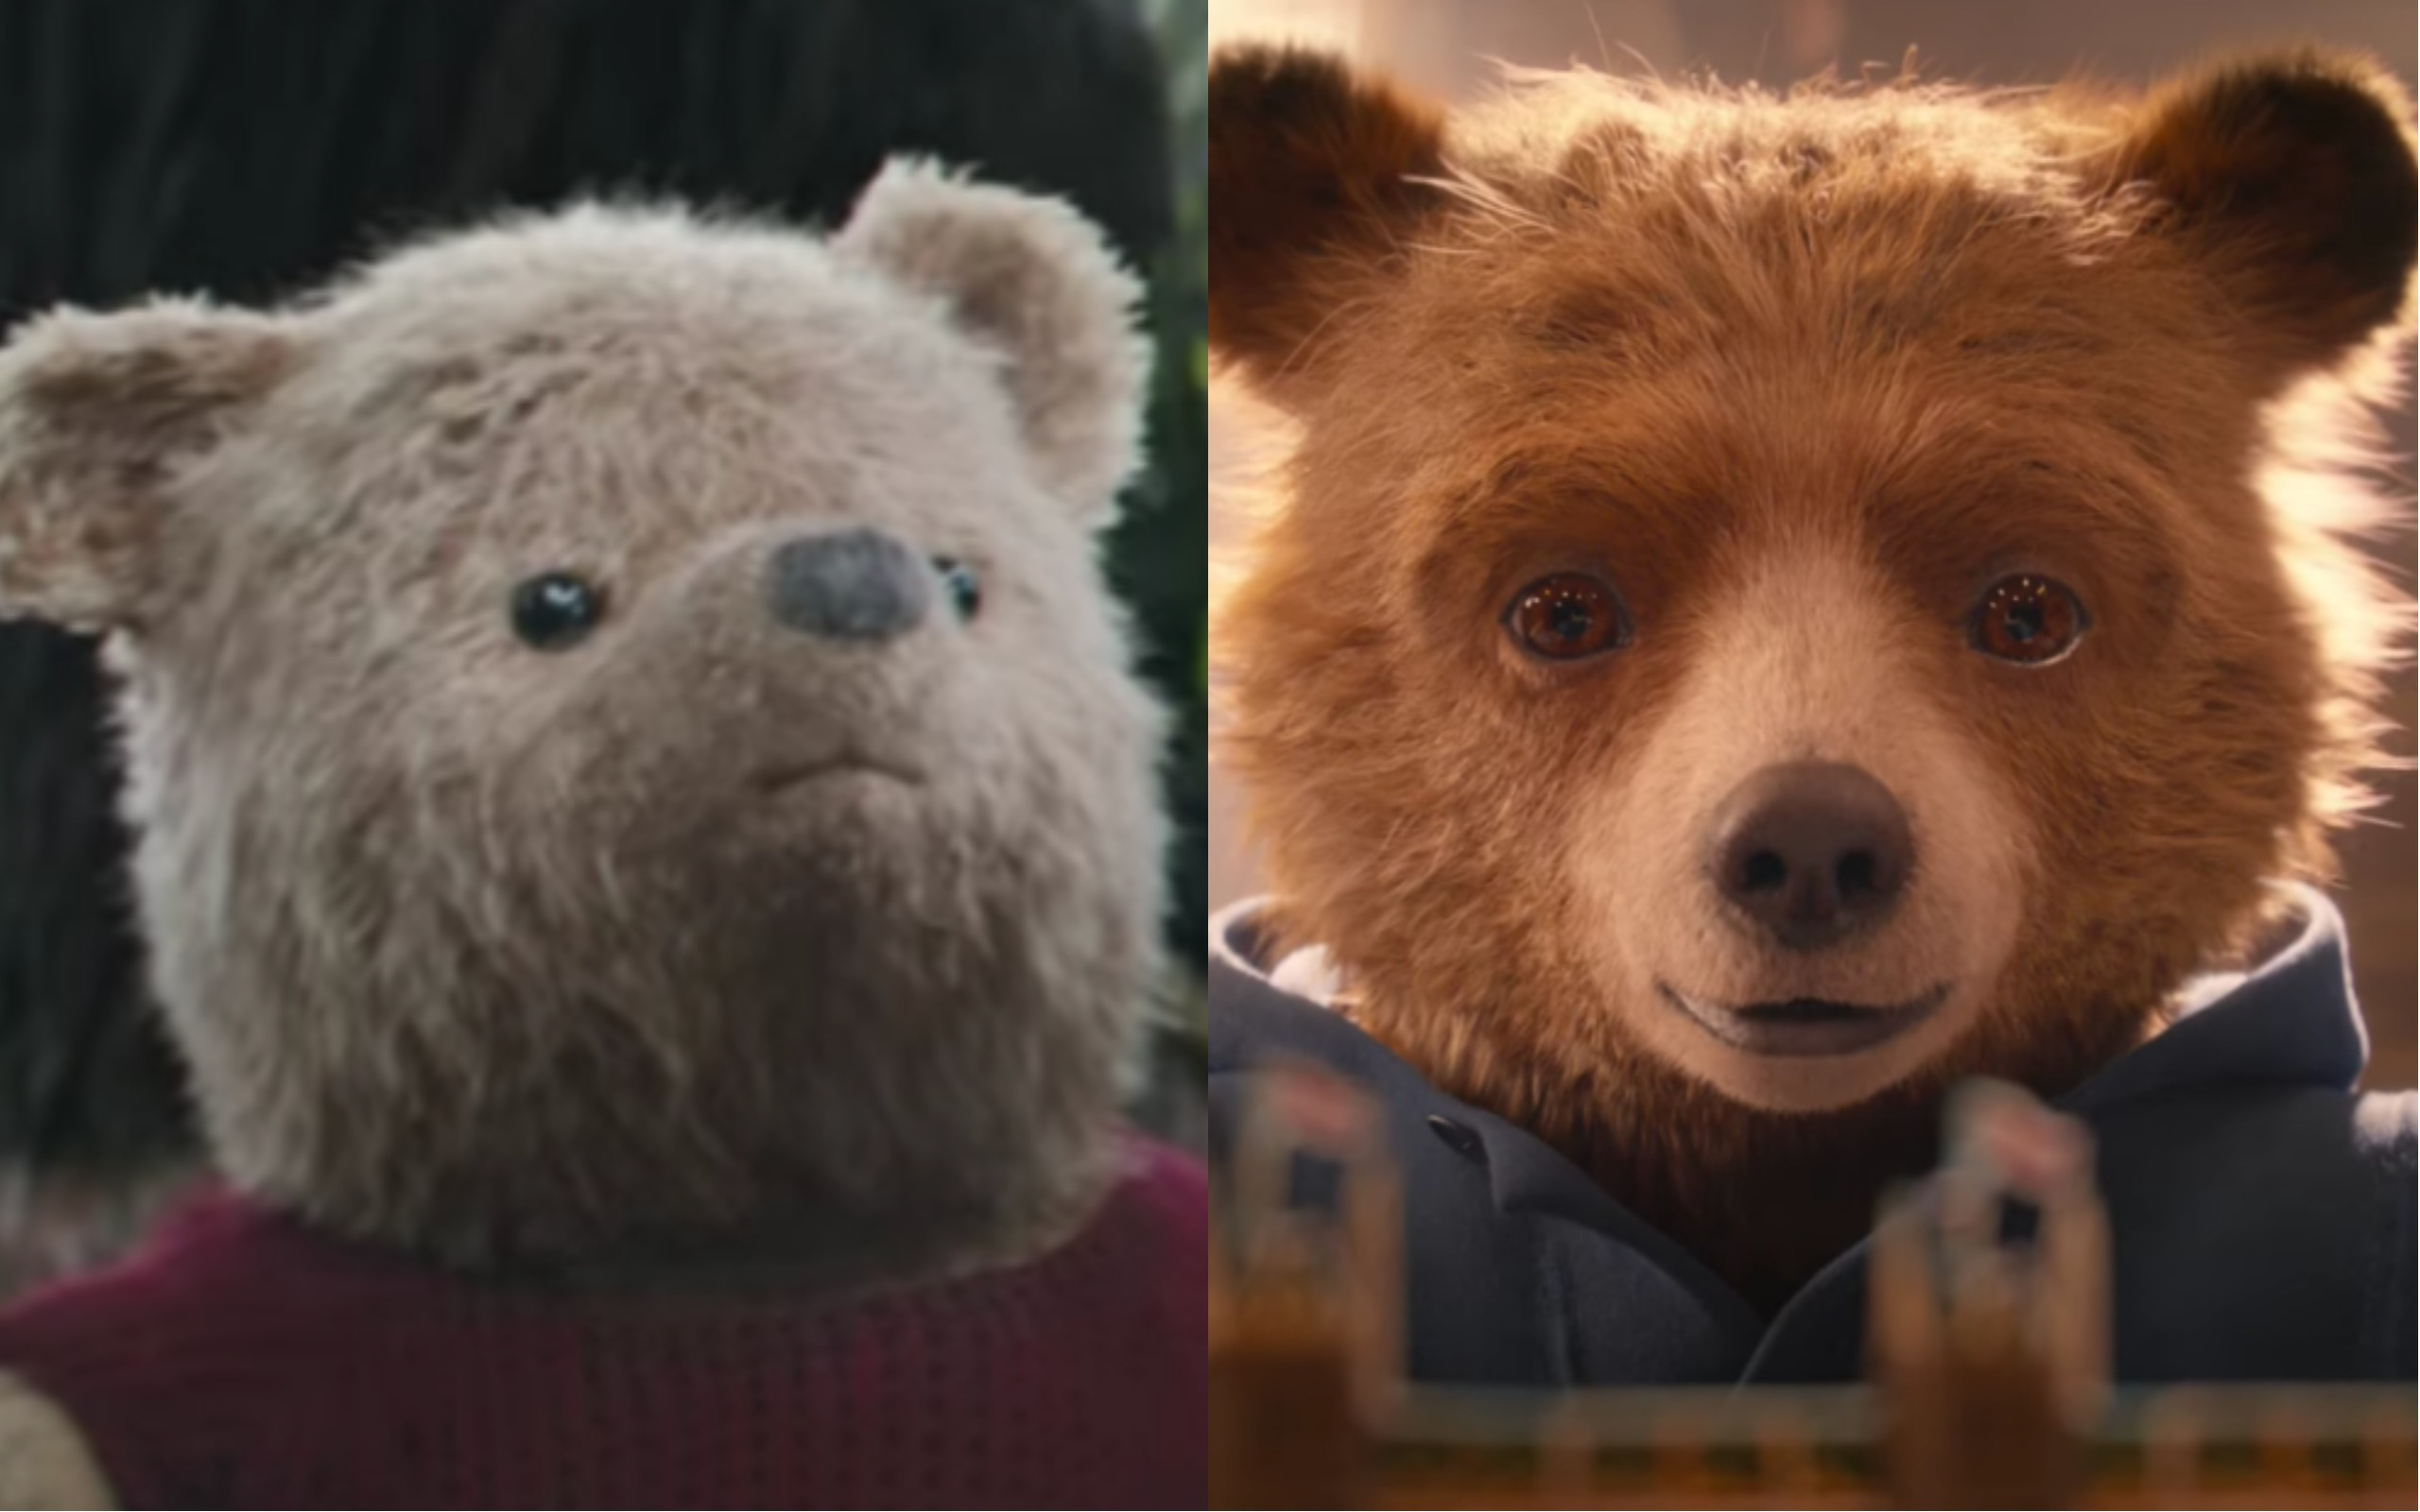 twitter is arguing in a heated pooh vs  paddington debate